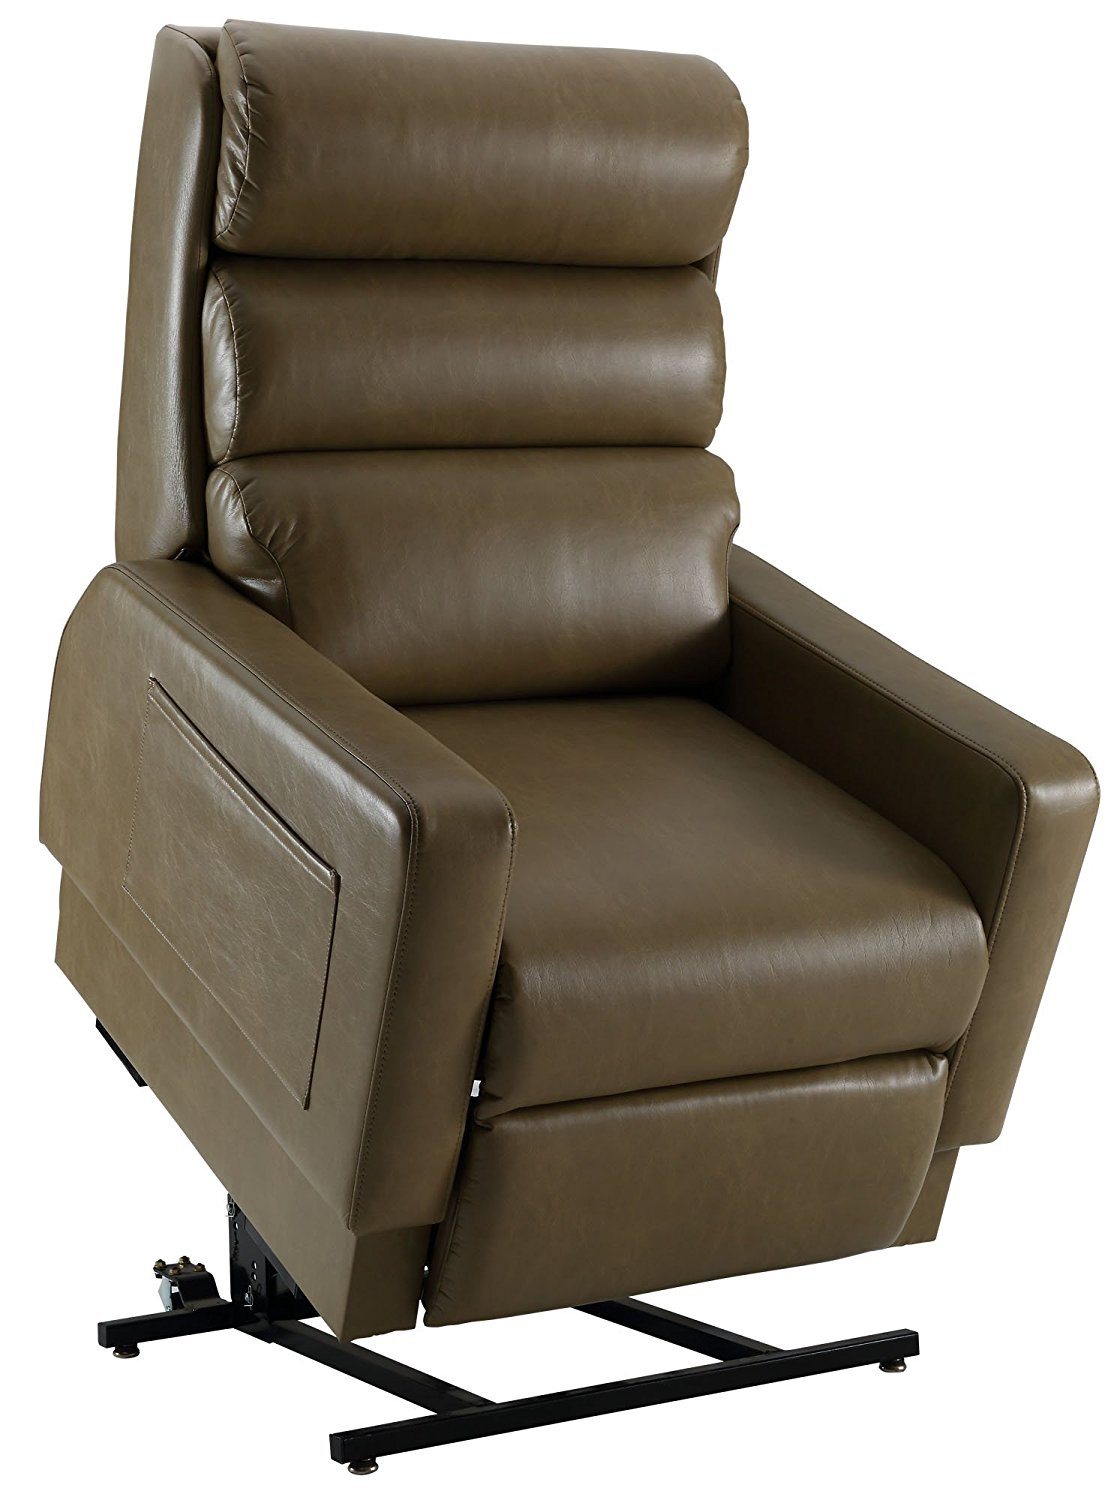 relax the back mobility lift chair with storage cozzia mc 520 lay flat infinite position dual motor